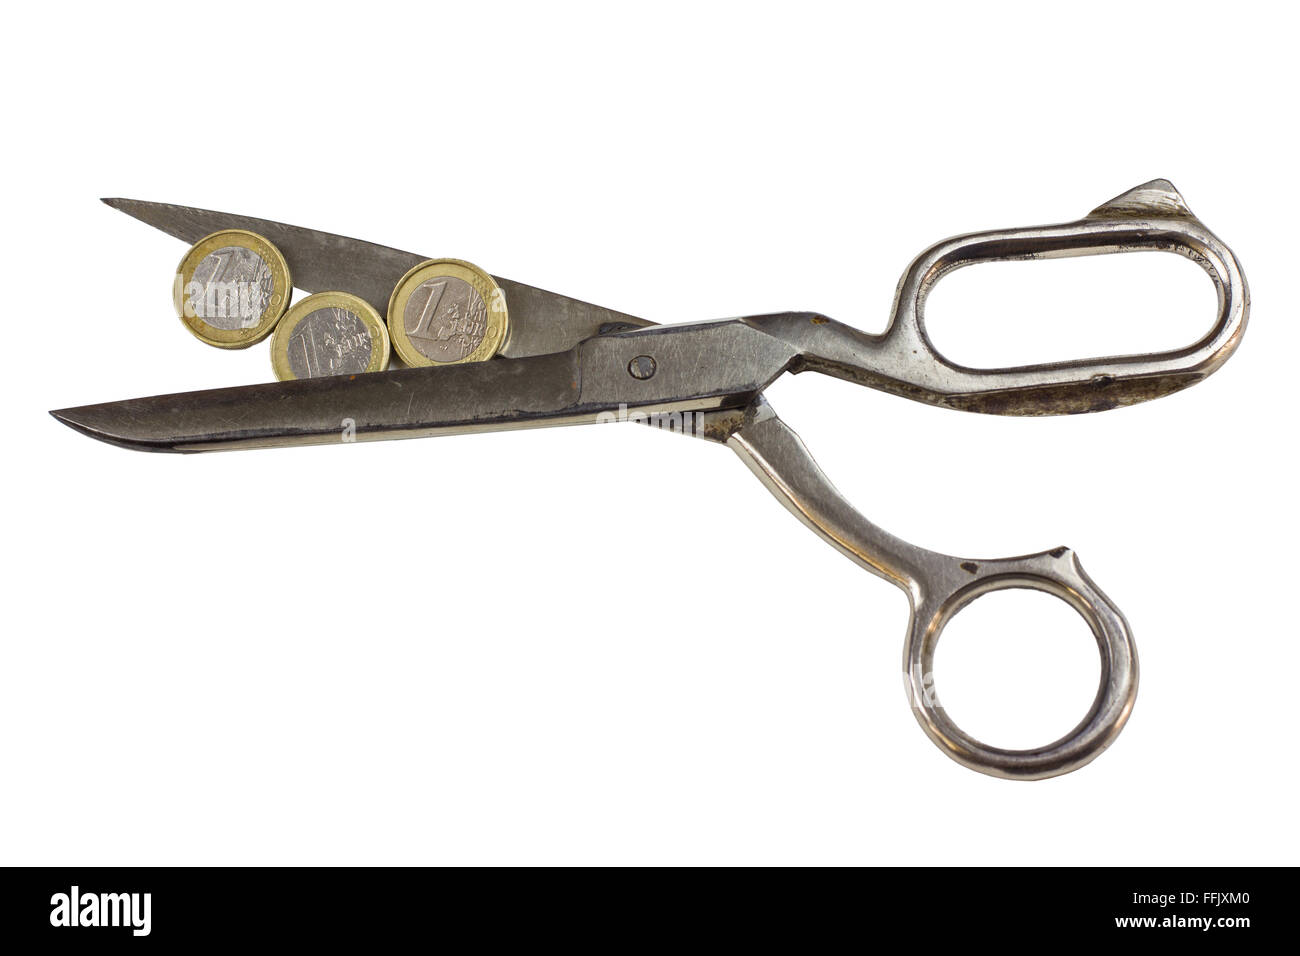 Budget cuts - coins between scissors isolated - Stock Image